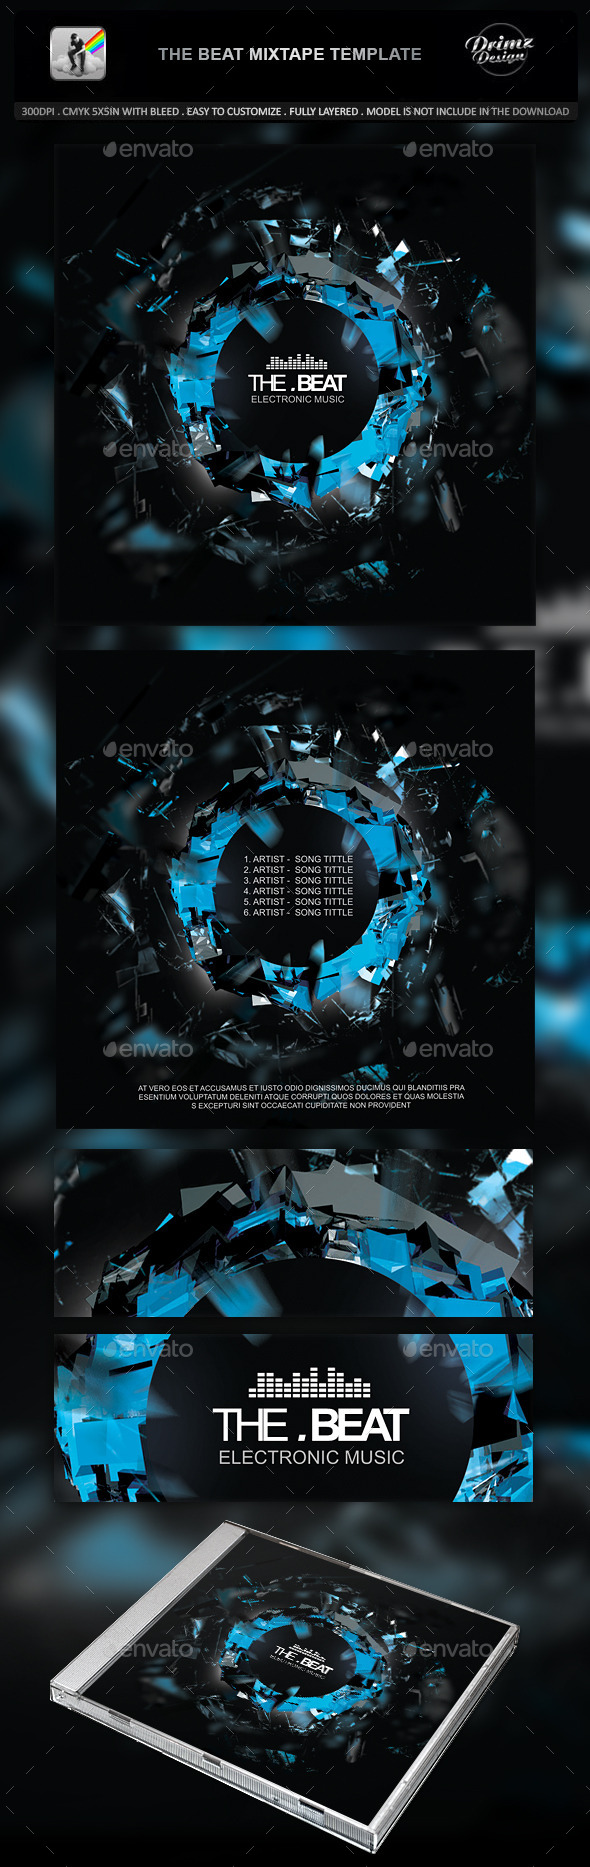 GraphicRiver The Beat Mixtape Template 10704157